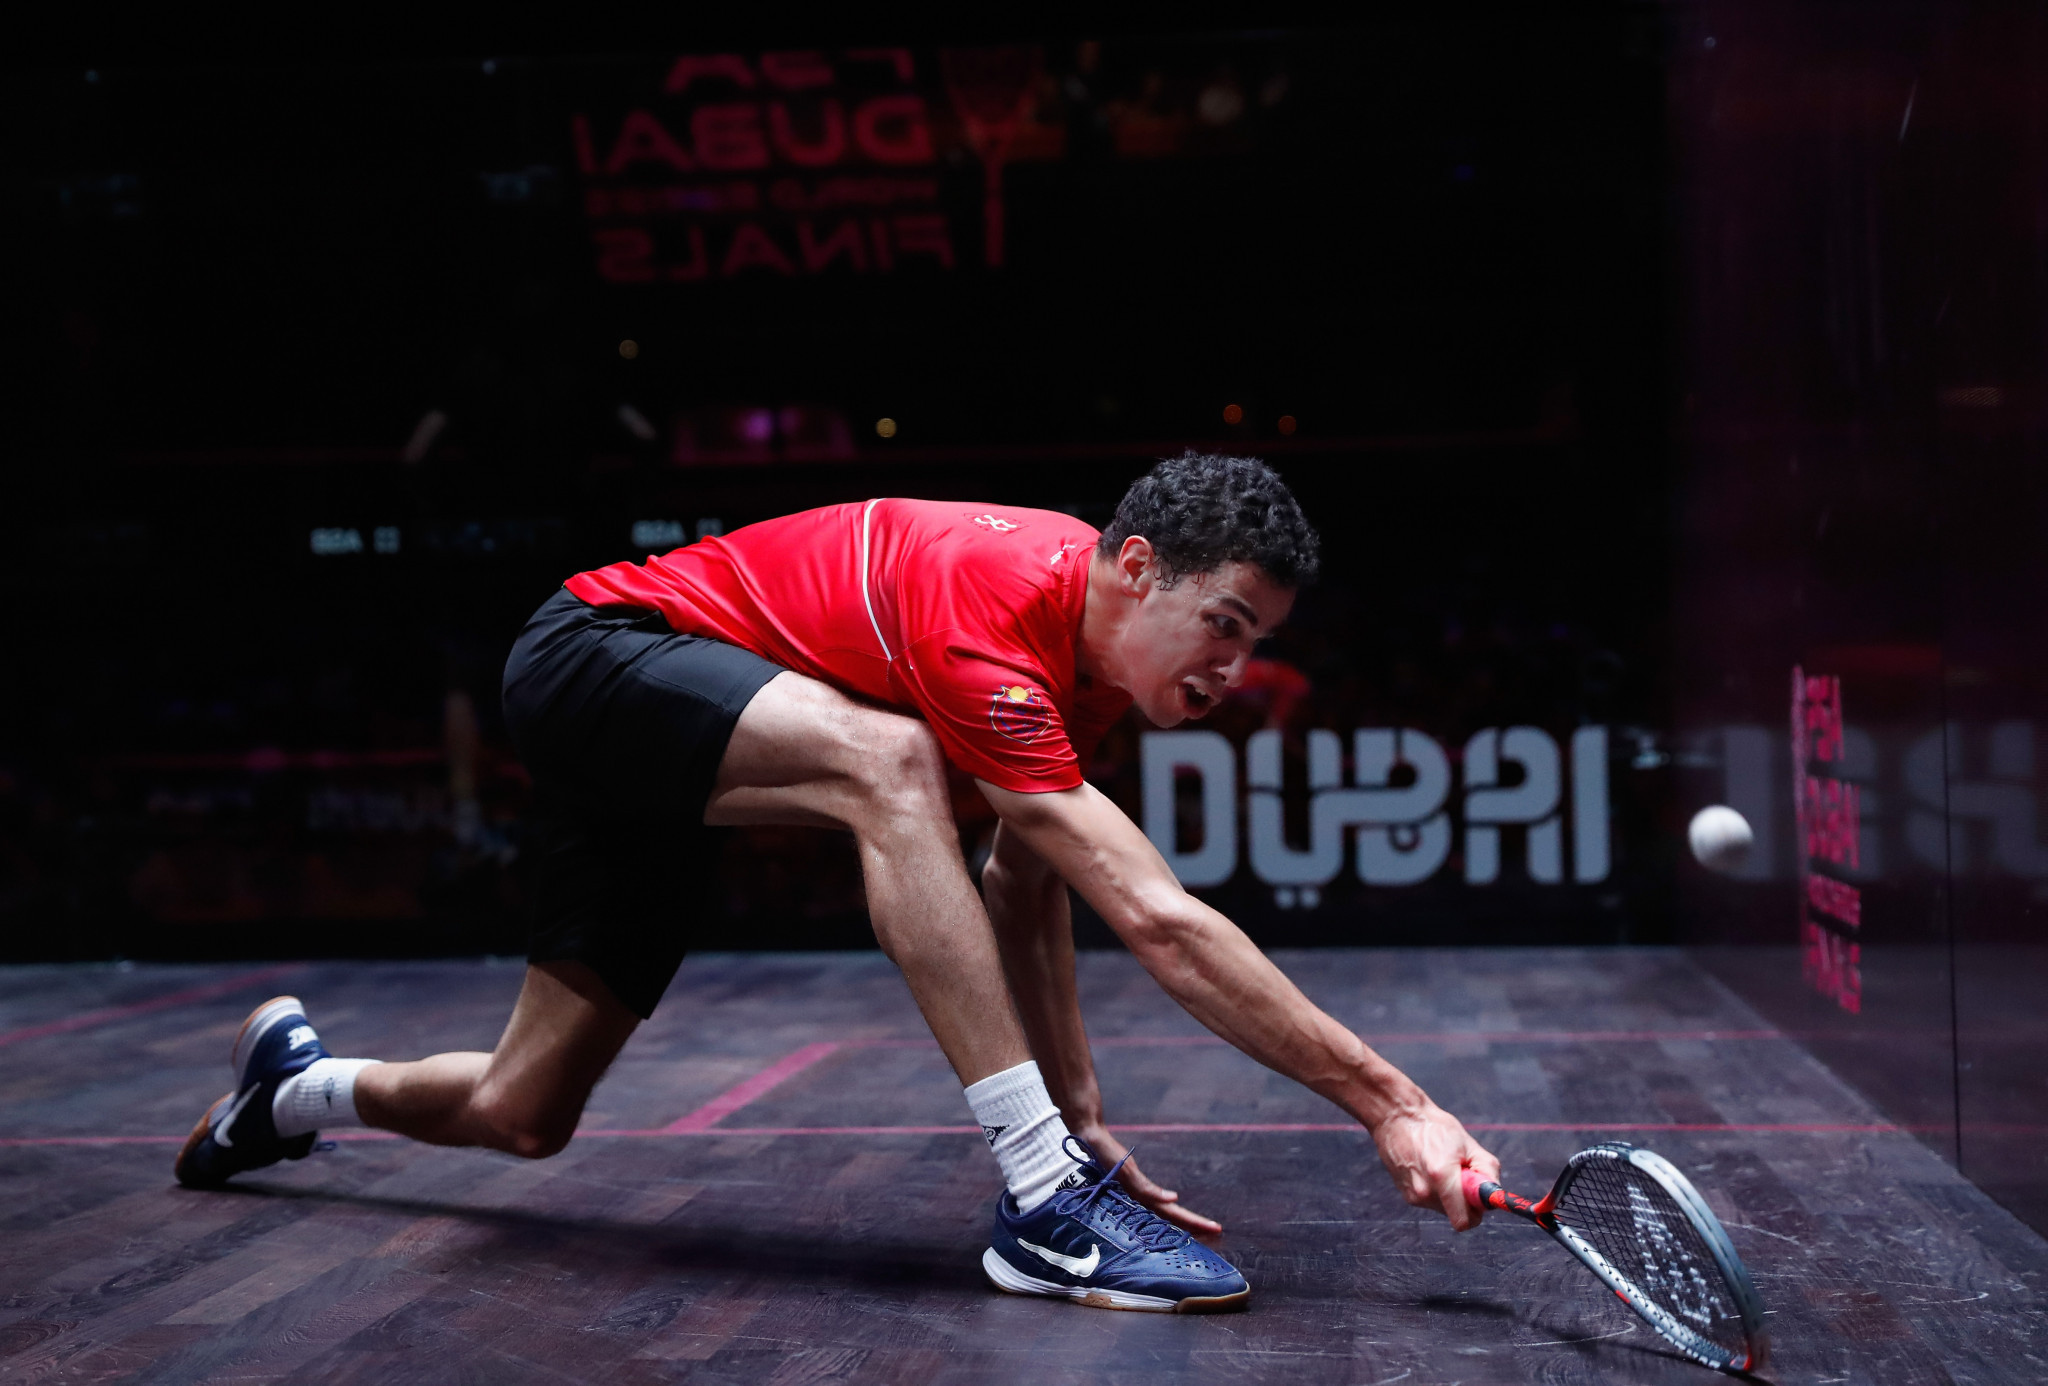 Top seeds beaten on opening day of PSA World Tour Finals in Cairo